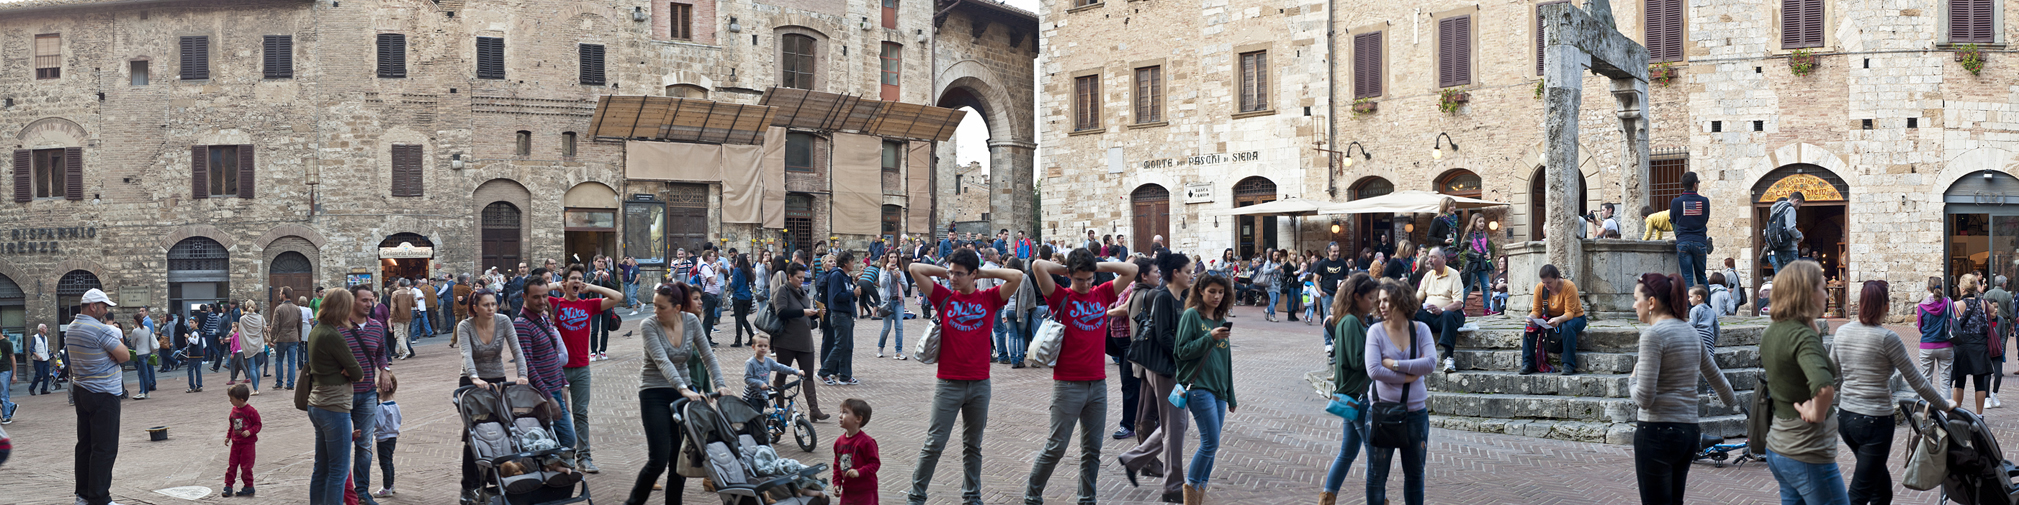 Piazza della Cisterna - Click on the image for a larger view.